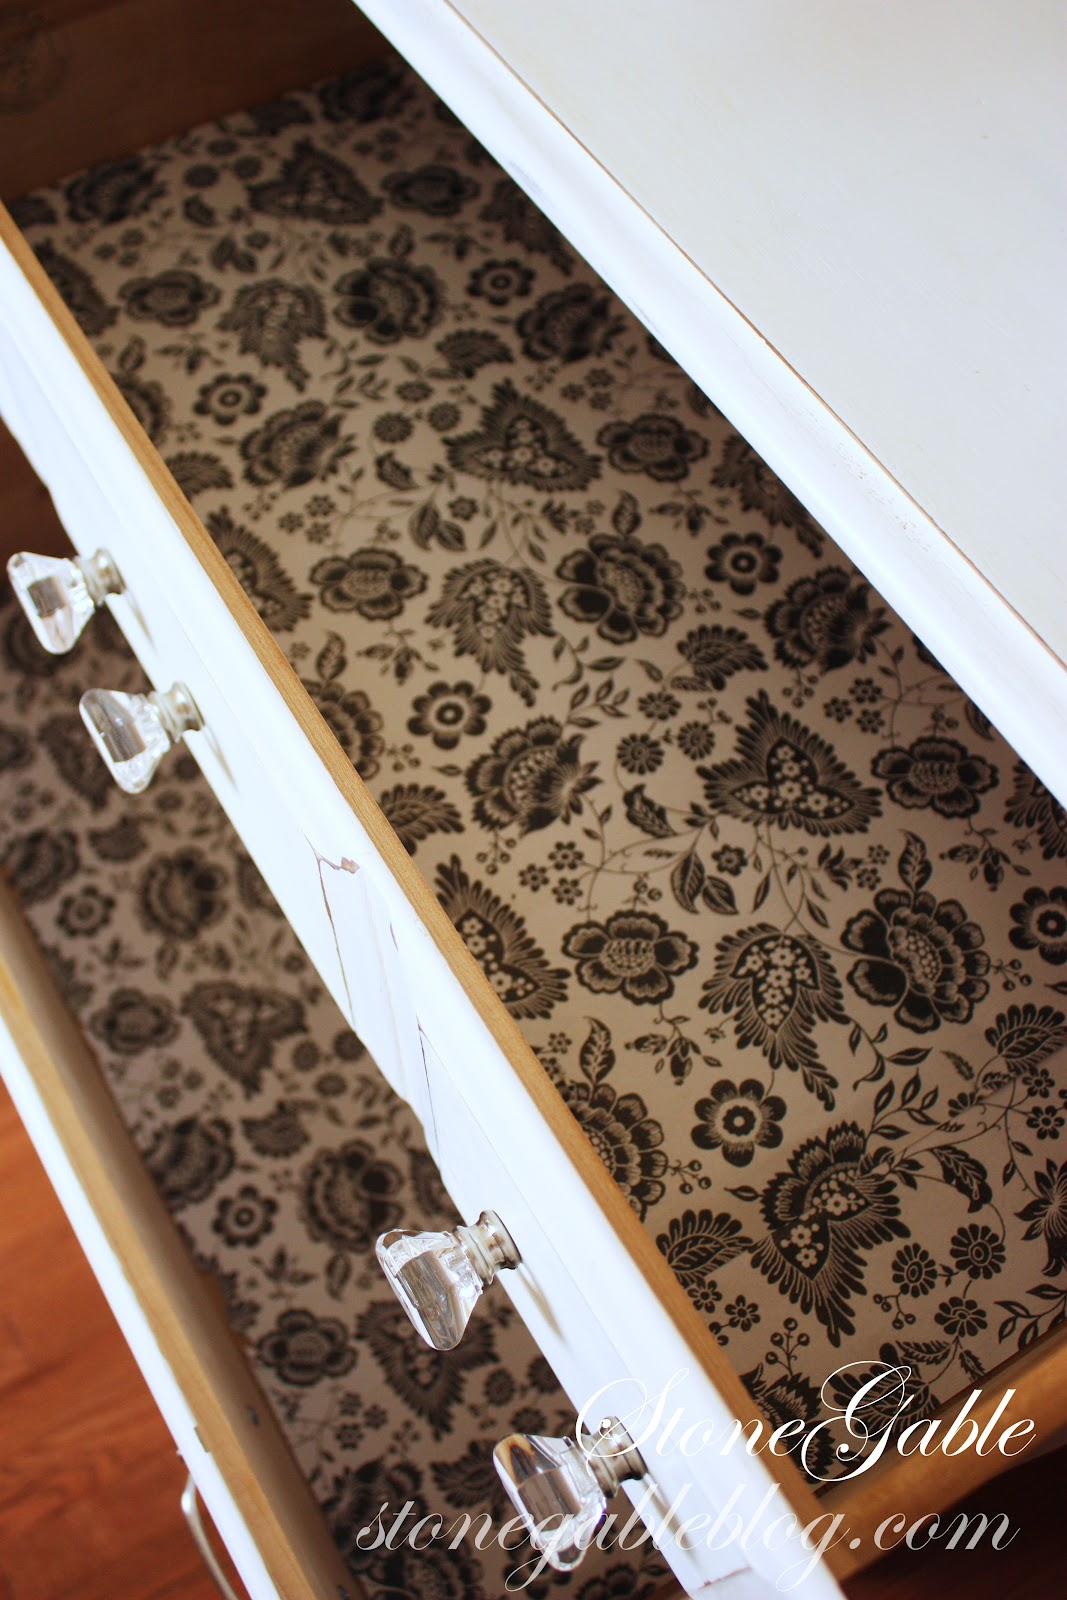 Best kitchen shelf liner - This Would Also Make A Thoughtful Gift A Few Lengths Of Scented Paper Tied Up In A Pretty Bow